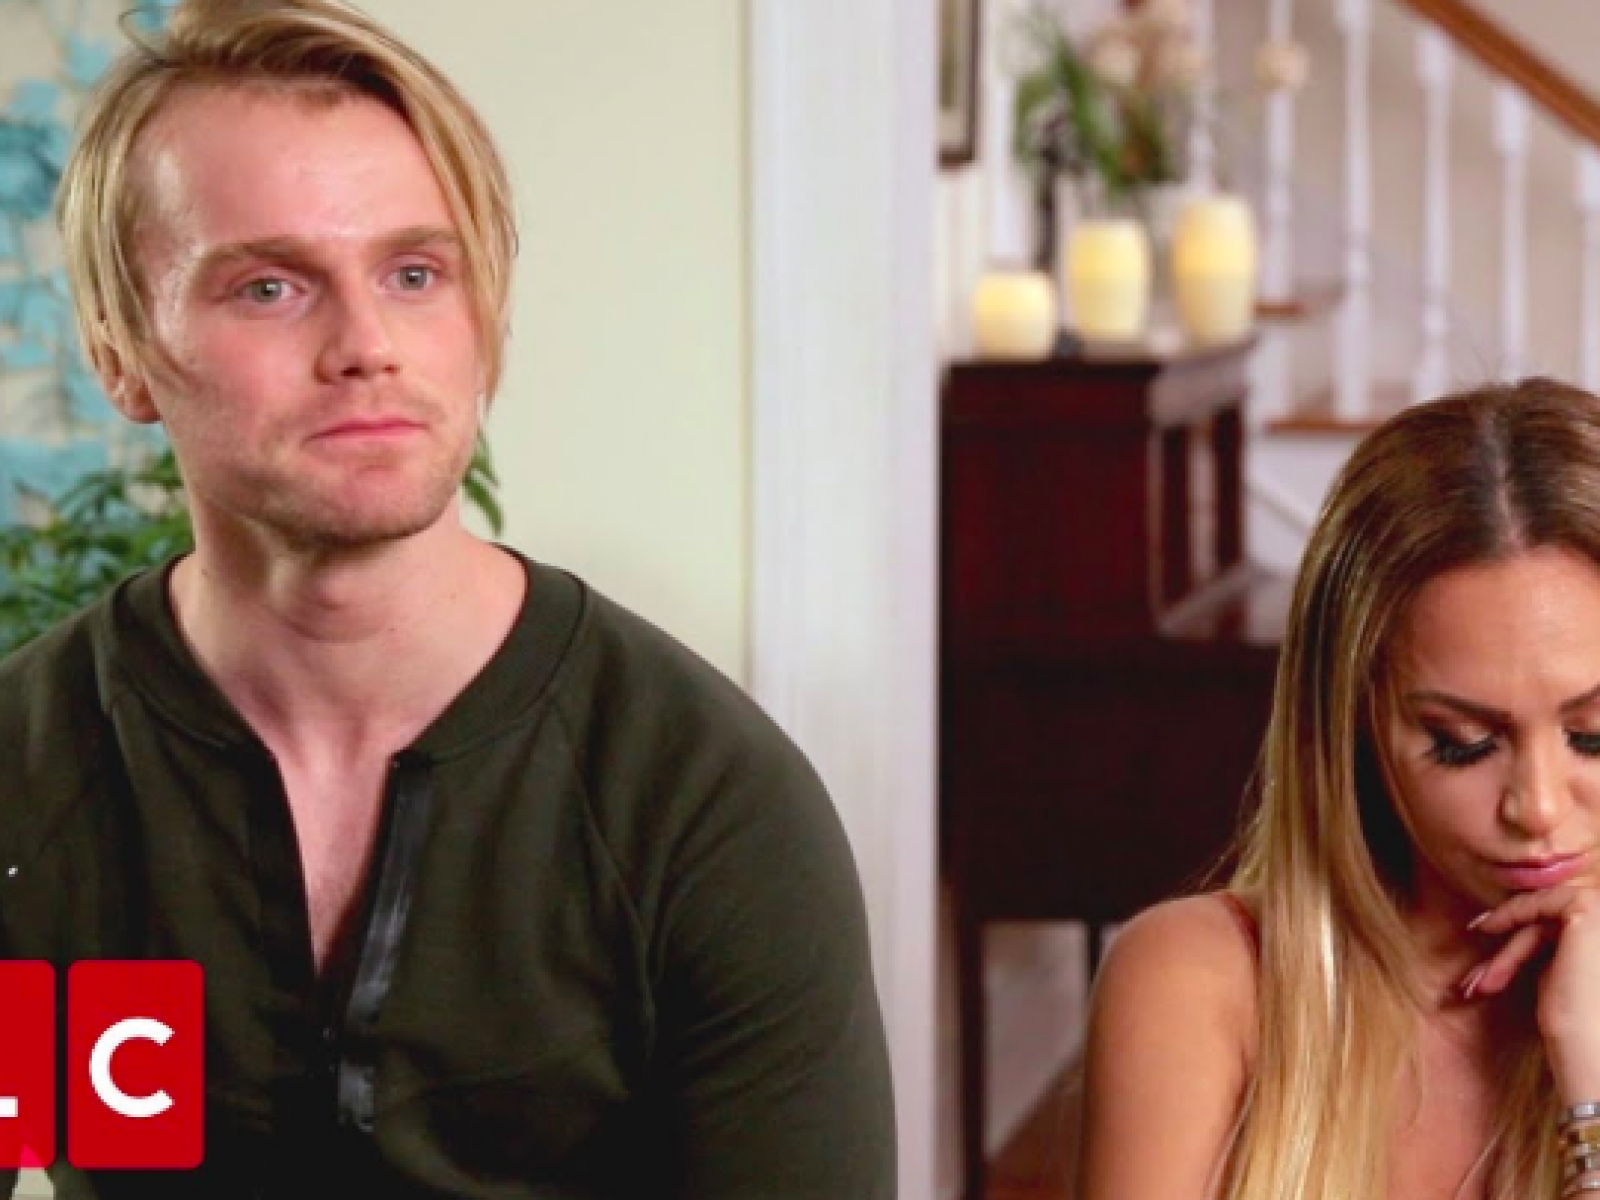 90 Day Fiancé' Stars Jesse and Darcey: What Really Happened in the